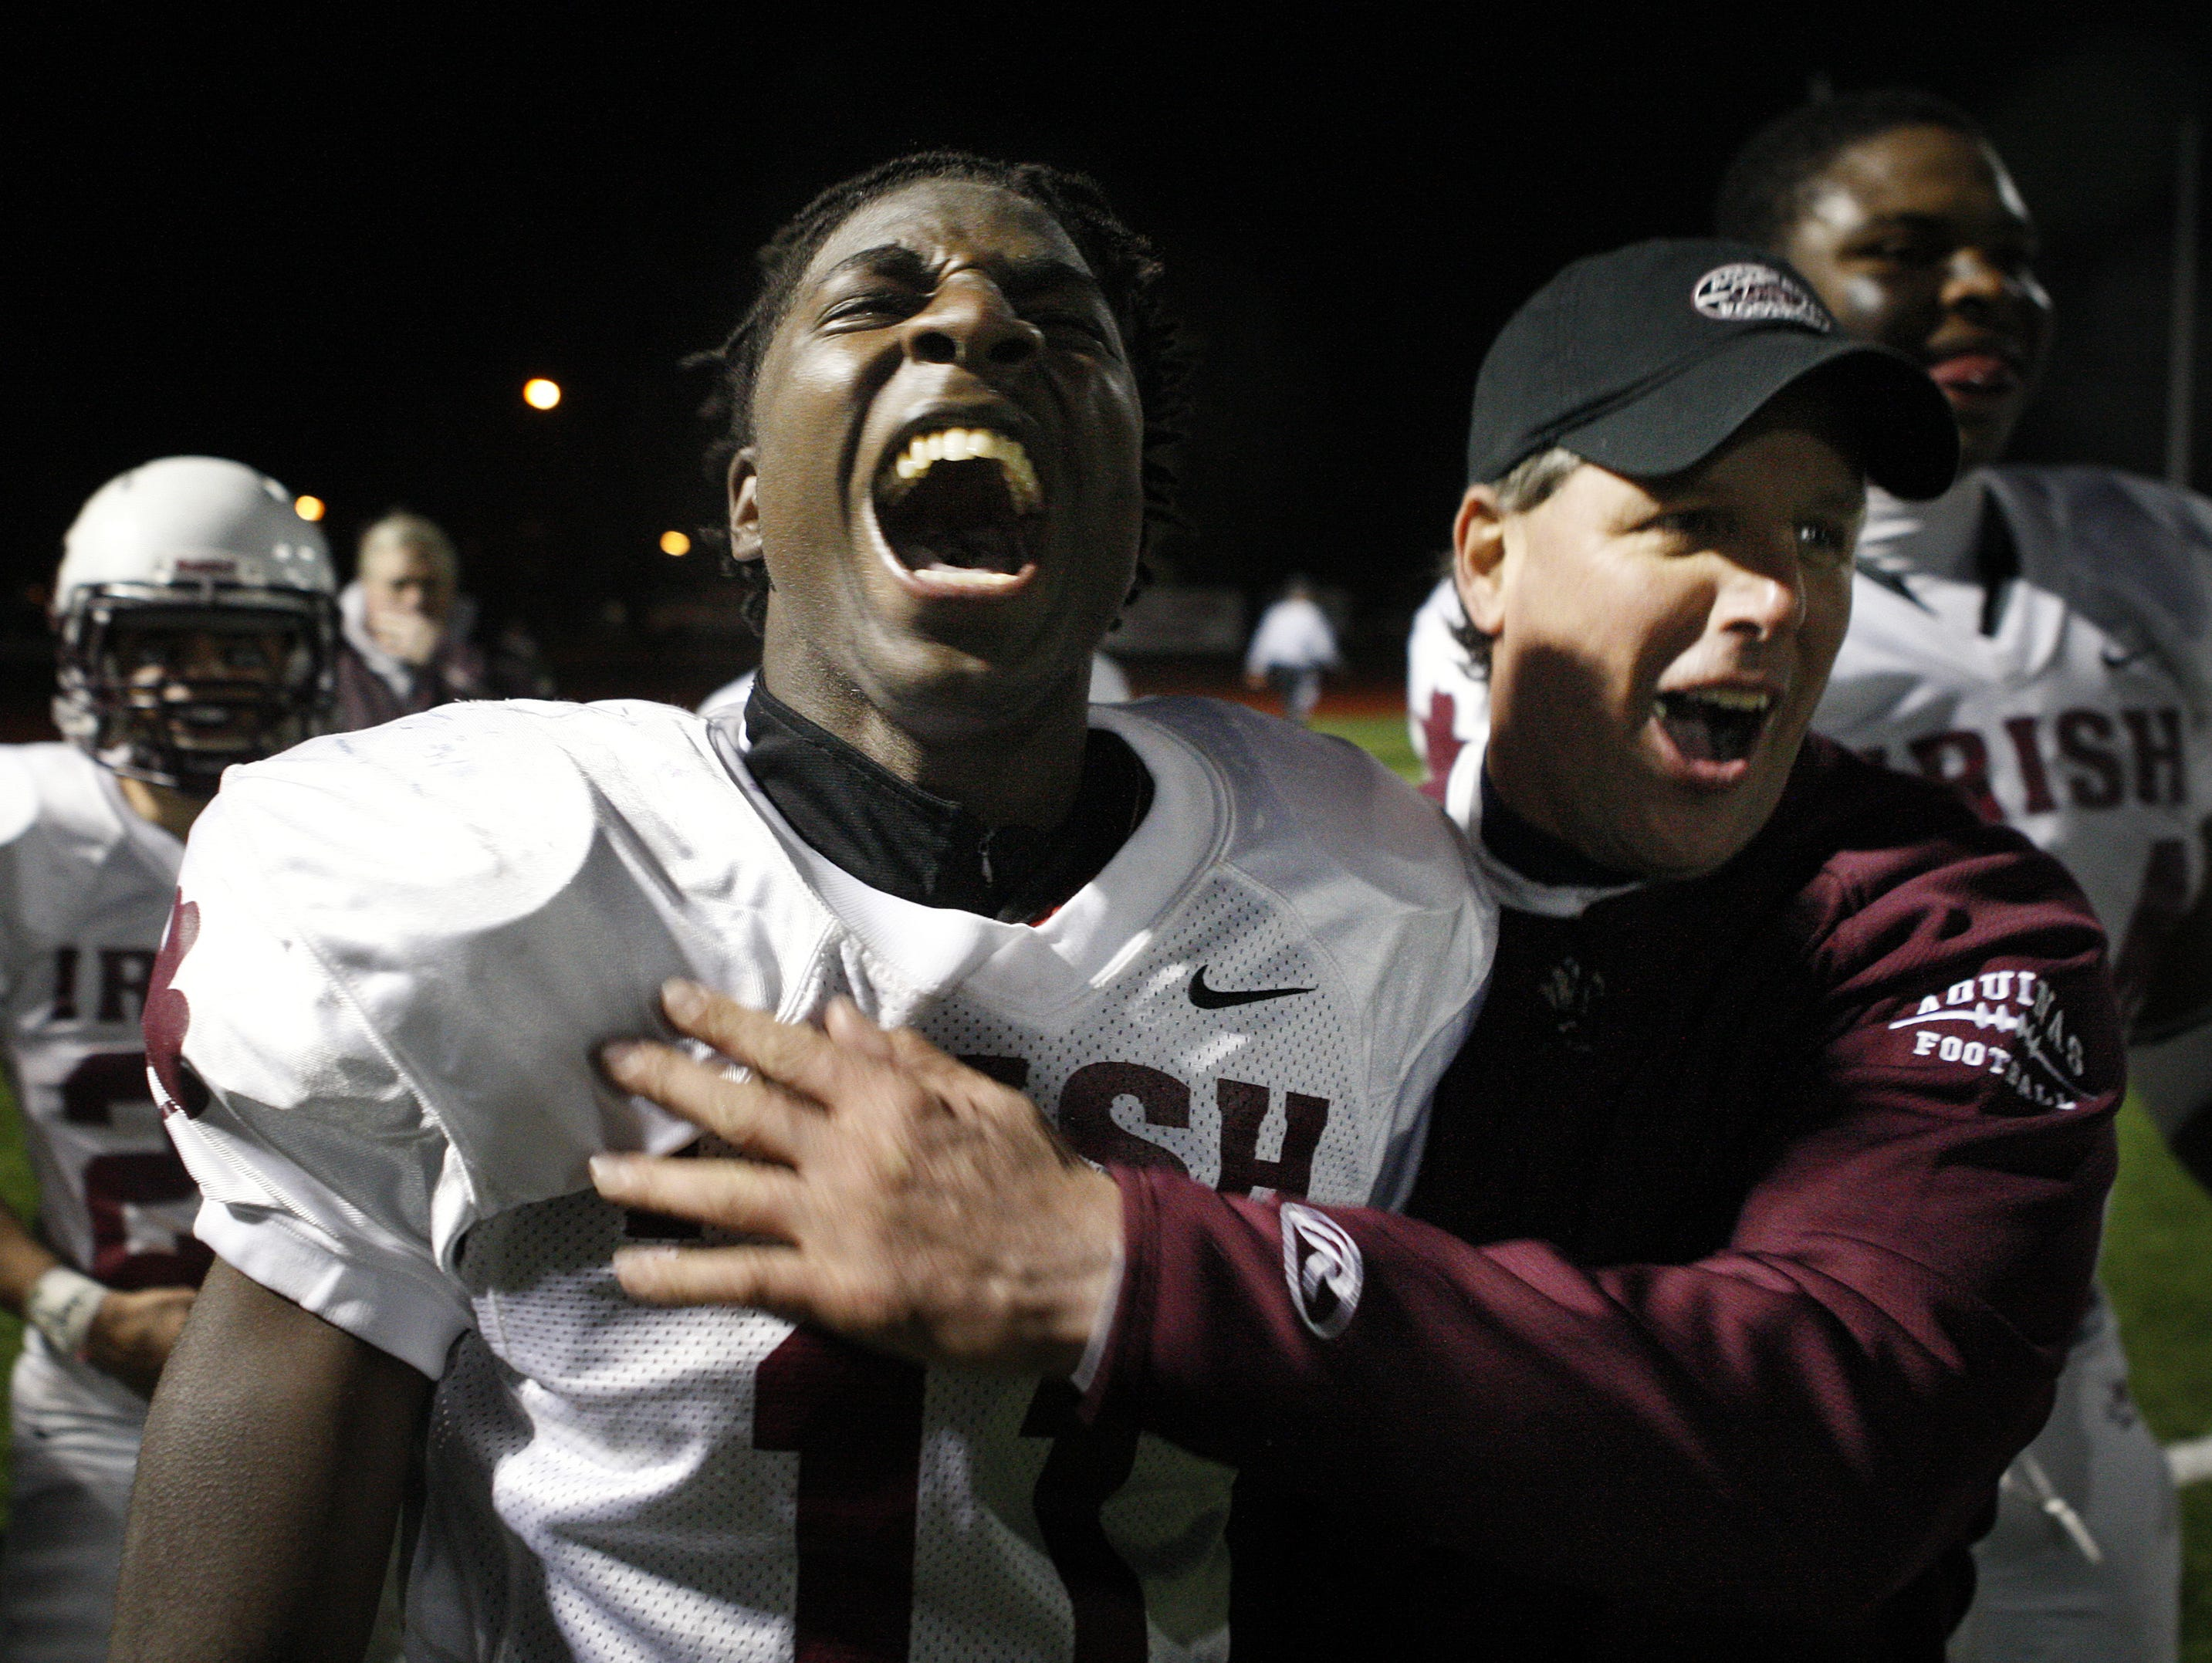 Aquinas' Jahmahl Pardner, left, lets out a scream while celebrating with coach Chris Battaglia after returning a punt 67 yards for a touchdown against Sweet Home during the 2010 Class A state regional.